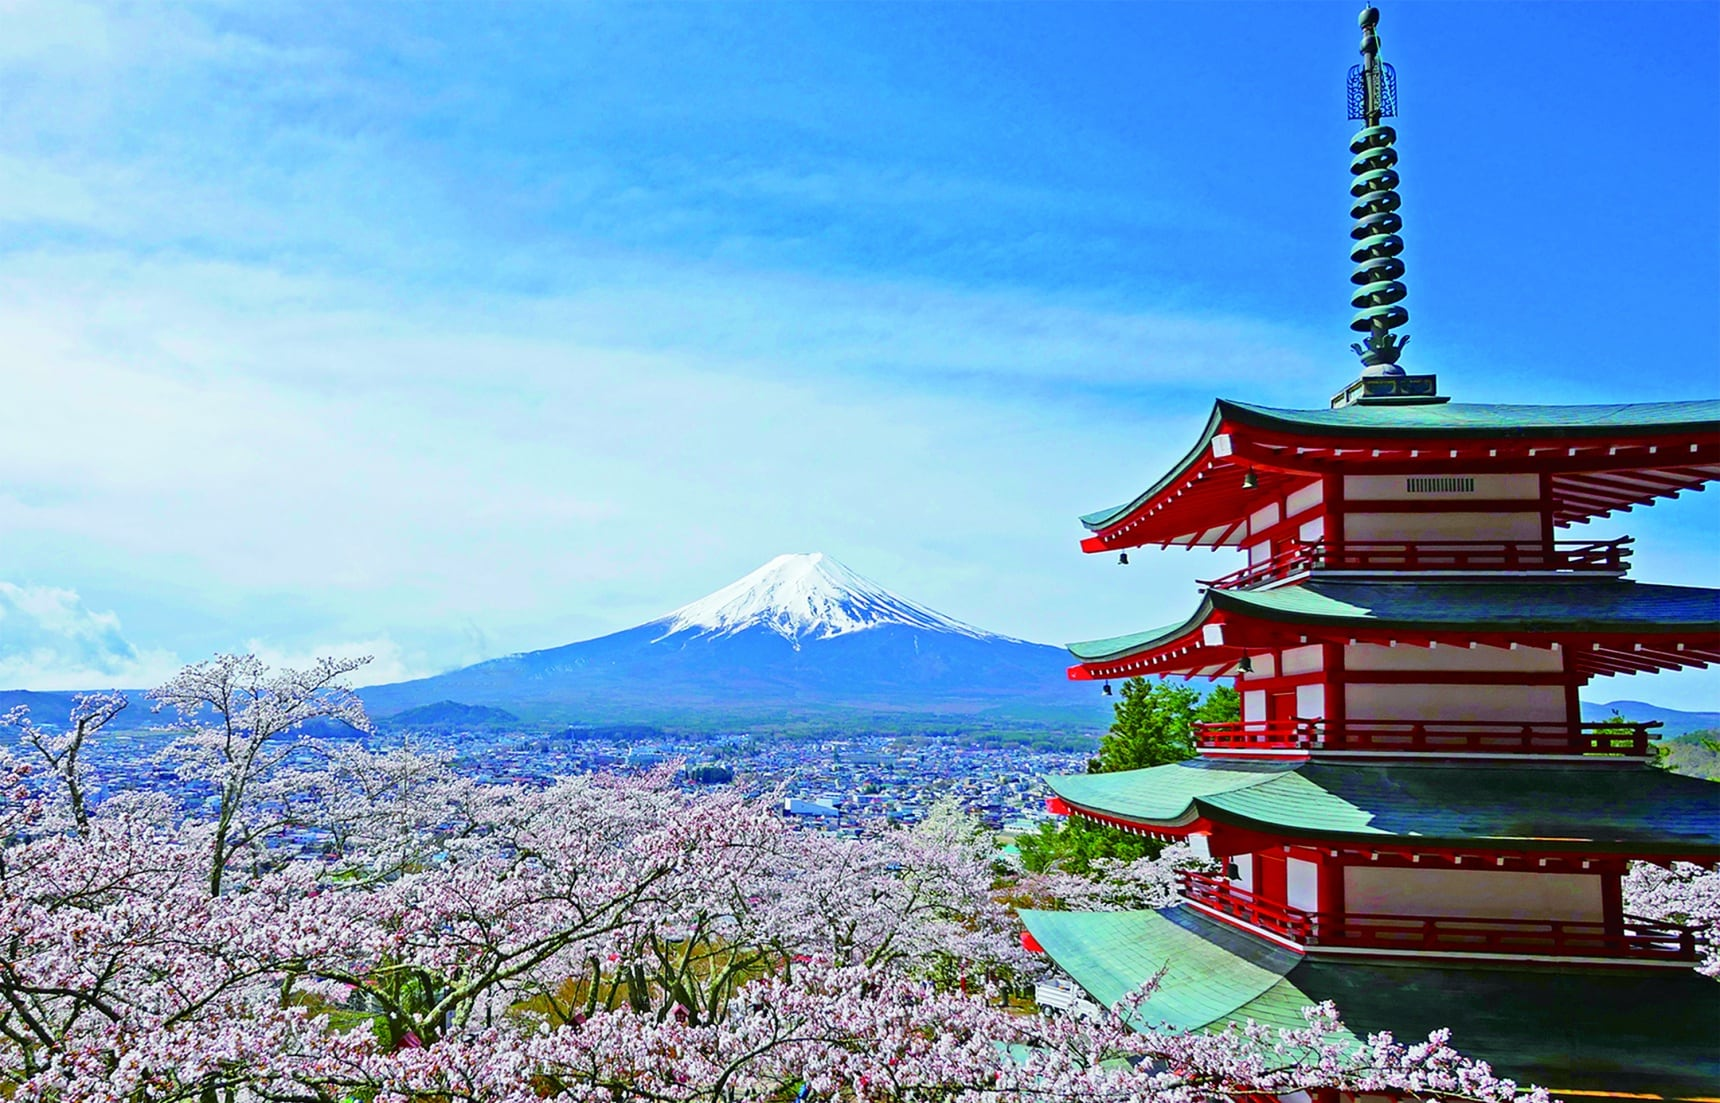 Discover Gems of Japan in the Mount Fuji Area